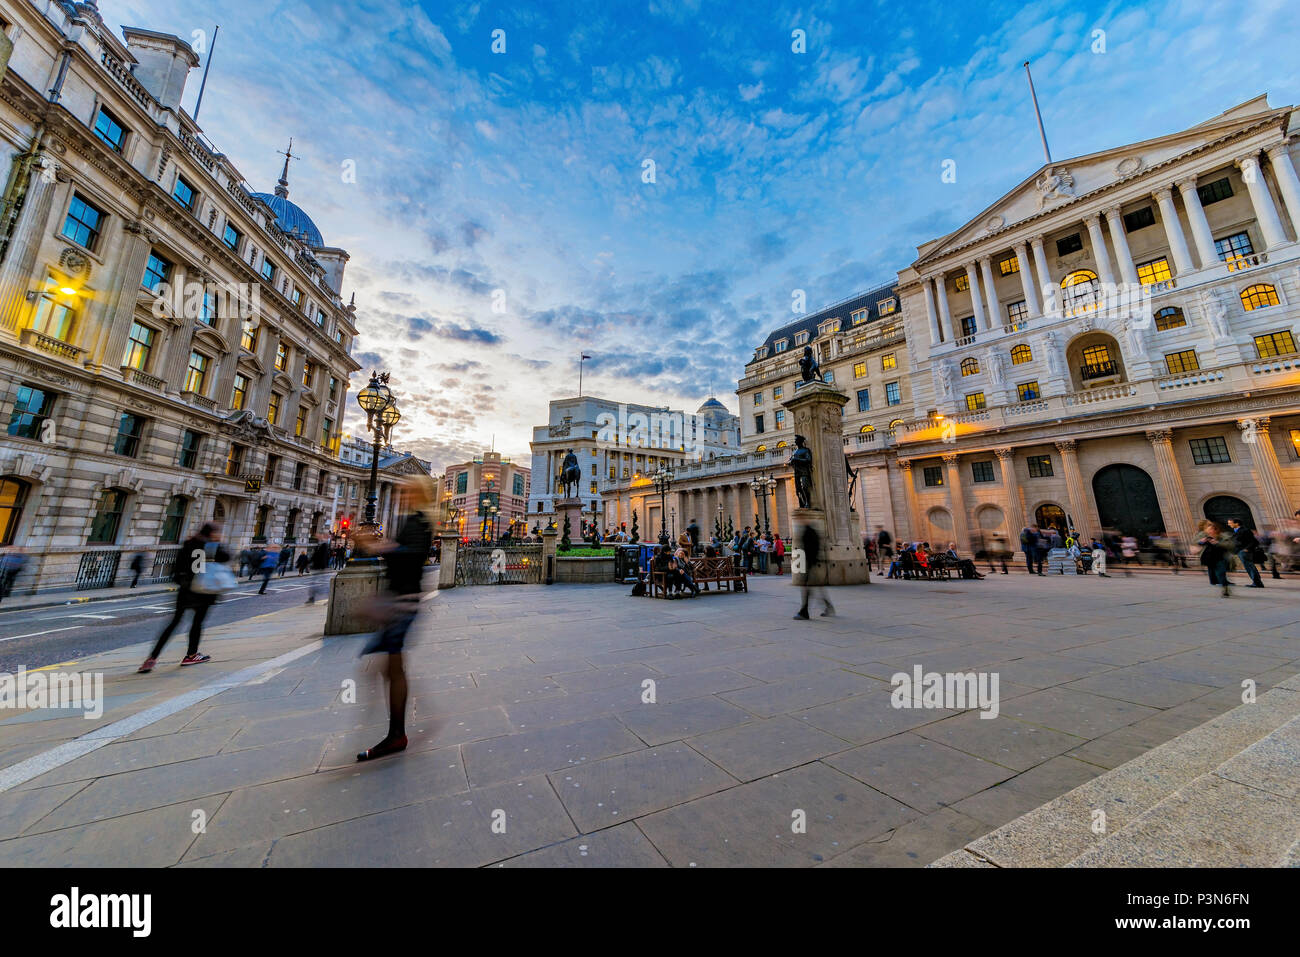 LONDON, UNITED KINGDOM - OCTOBER 26: Evening view outside the Royal Exchange of the bank of England and financial district area on October 26, 2017 in - Stock Image